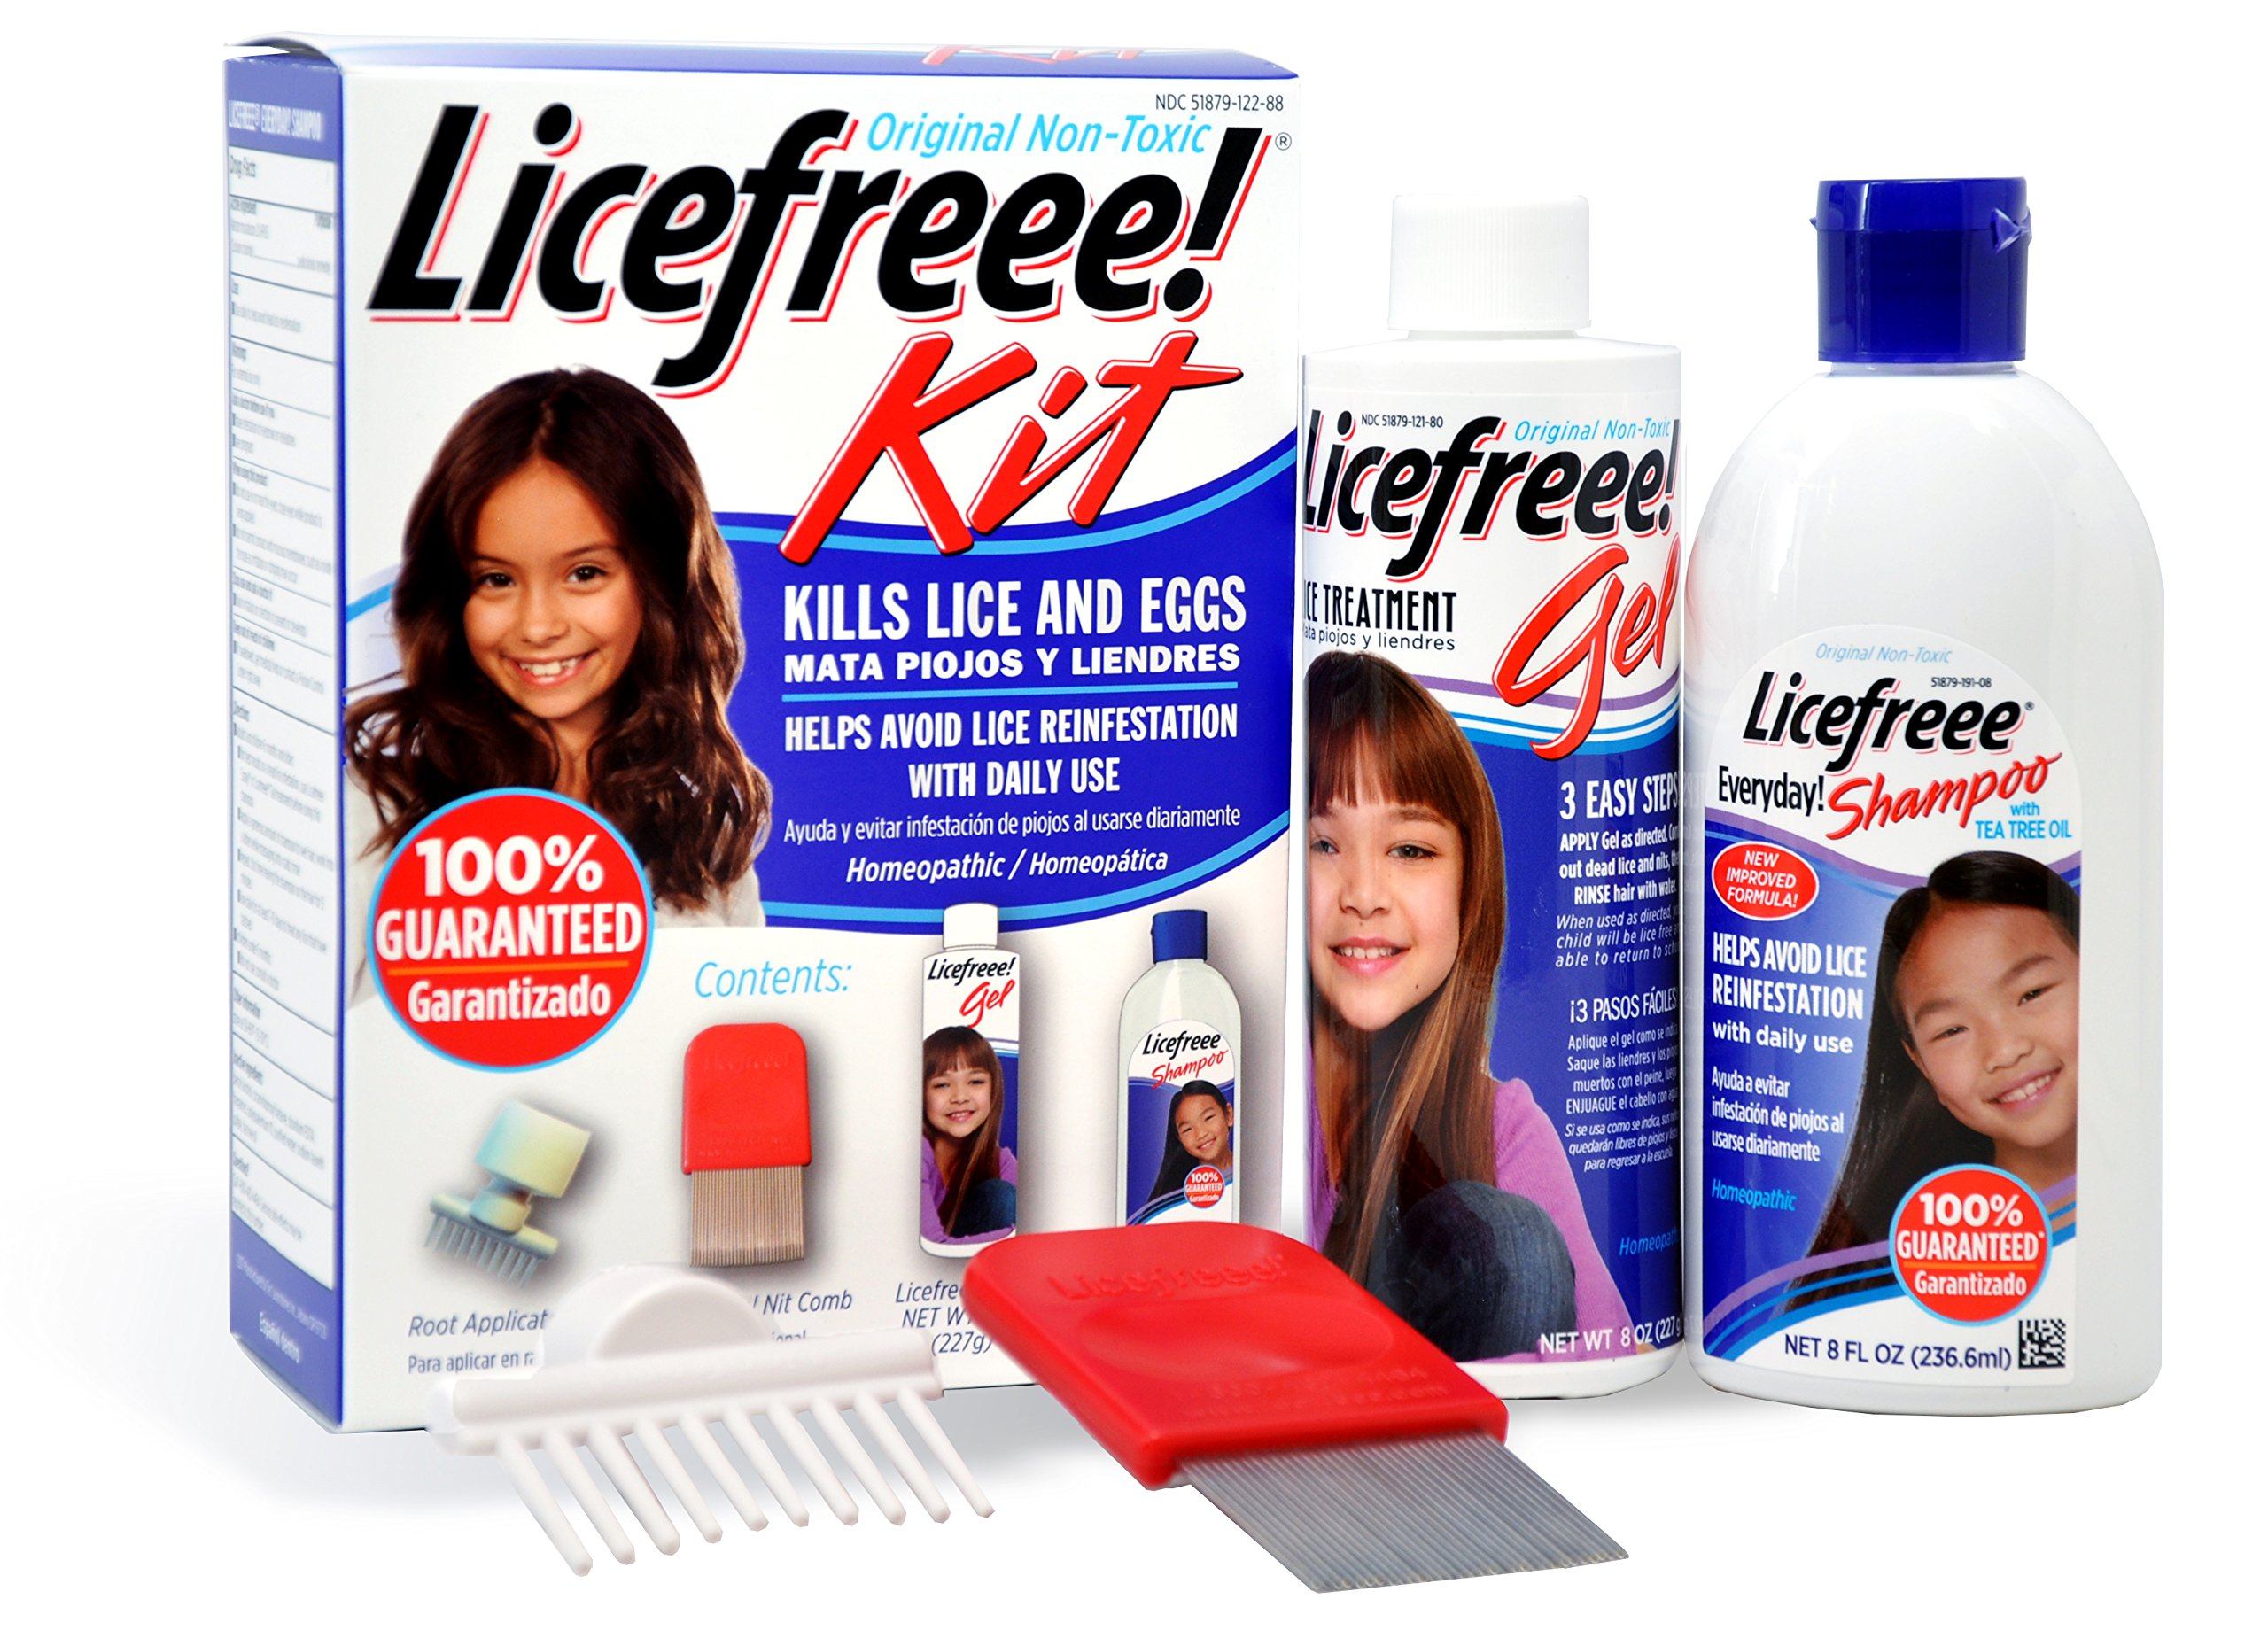 Licefreee Kit All-in-One Complete Lice Killing Treatment, Daily Maintenance Shampoo and Professional Nit Comb in One Box, 16 Fluid Ounce